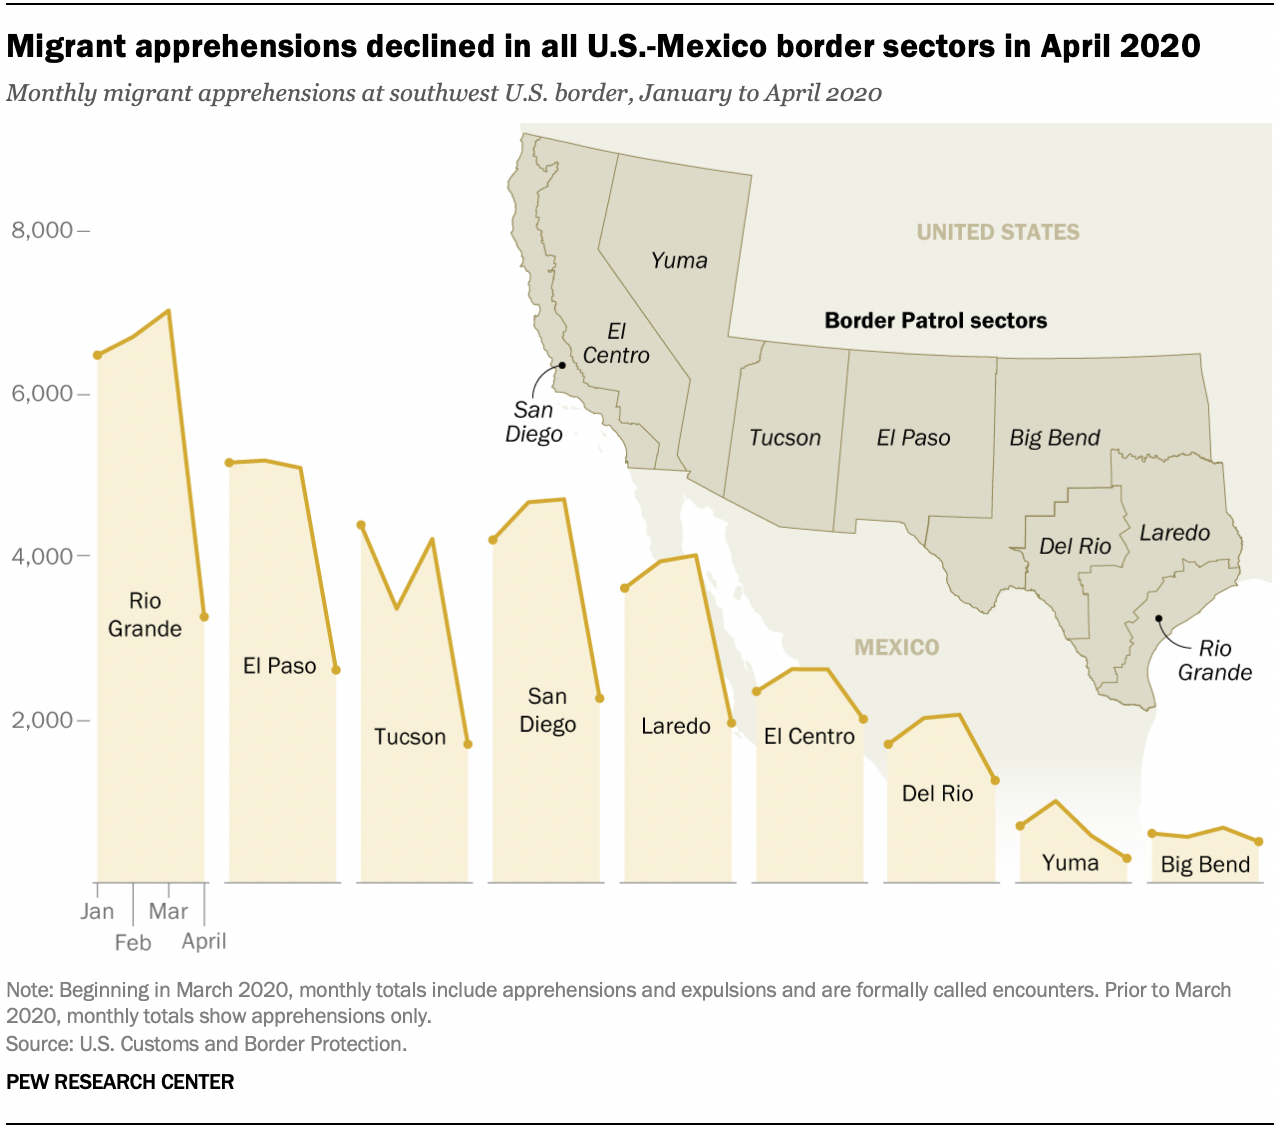 Migrant apprehensions declined in all U.S.-Mexico border sectors in April 2020